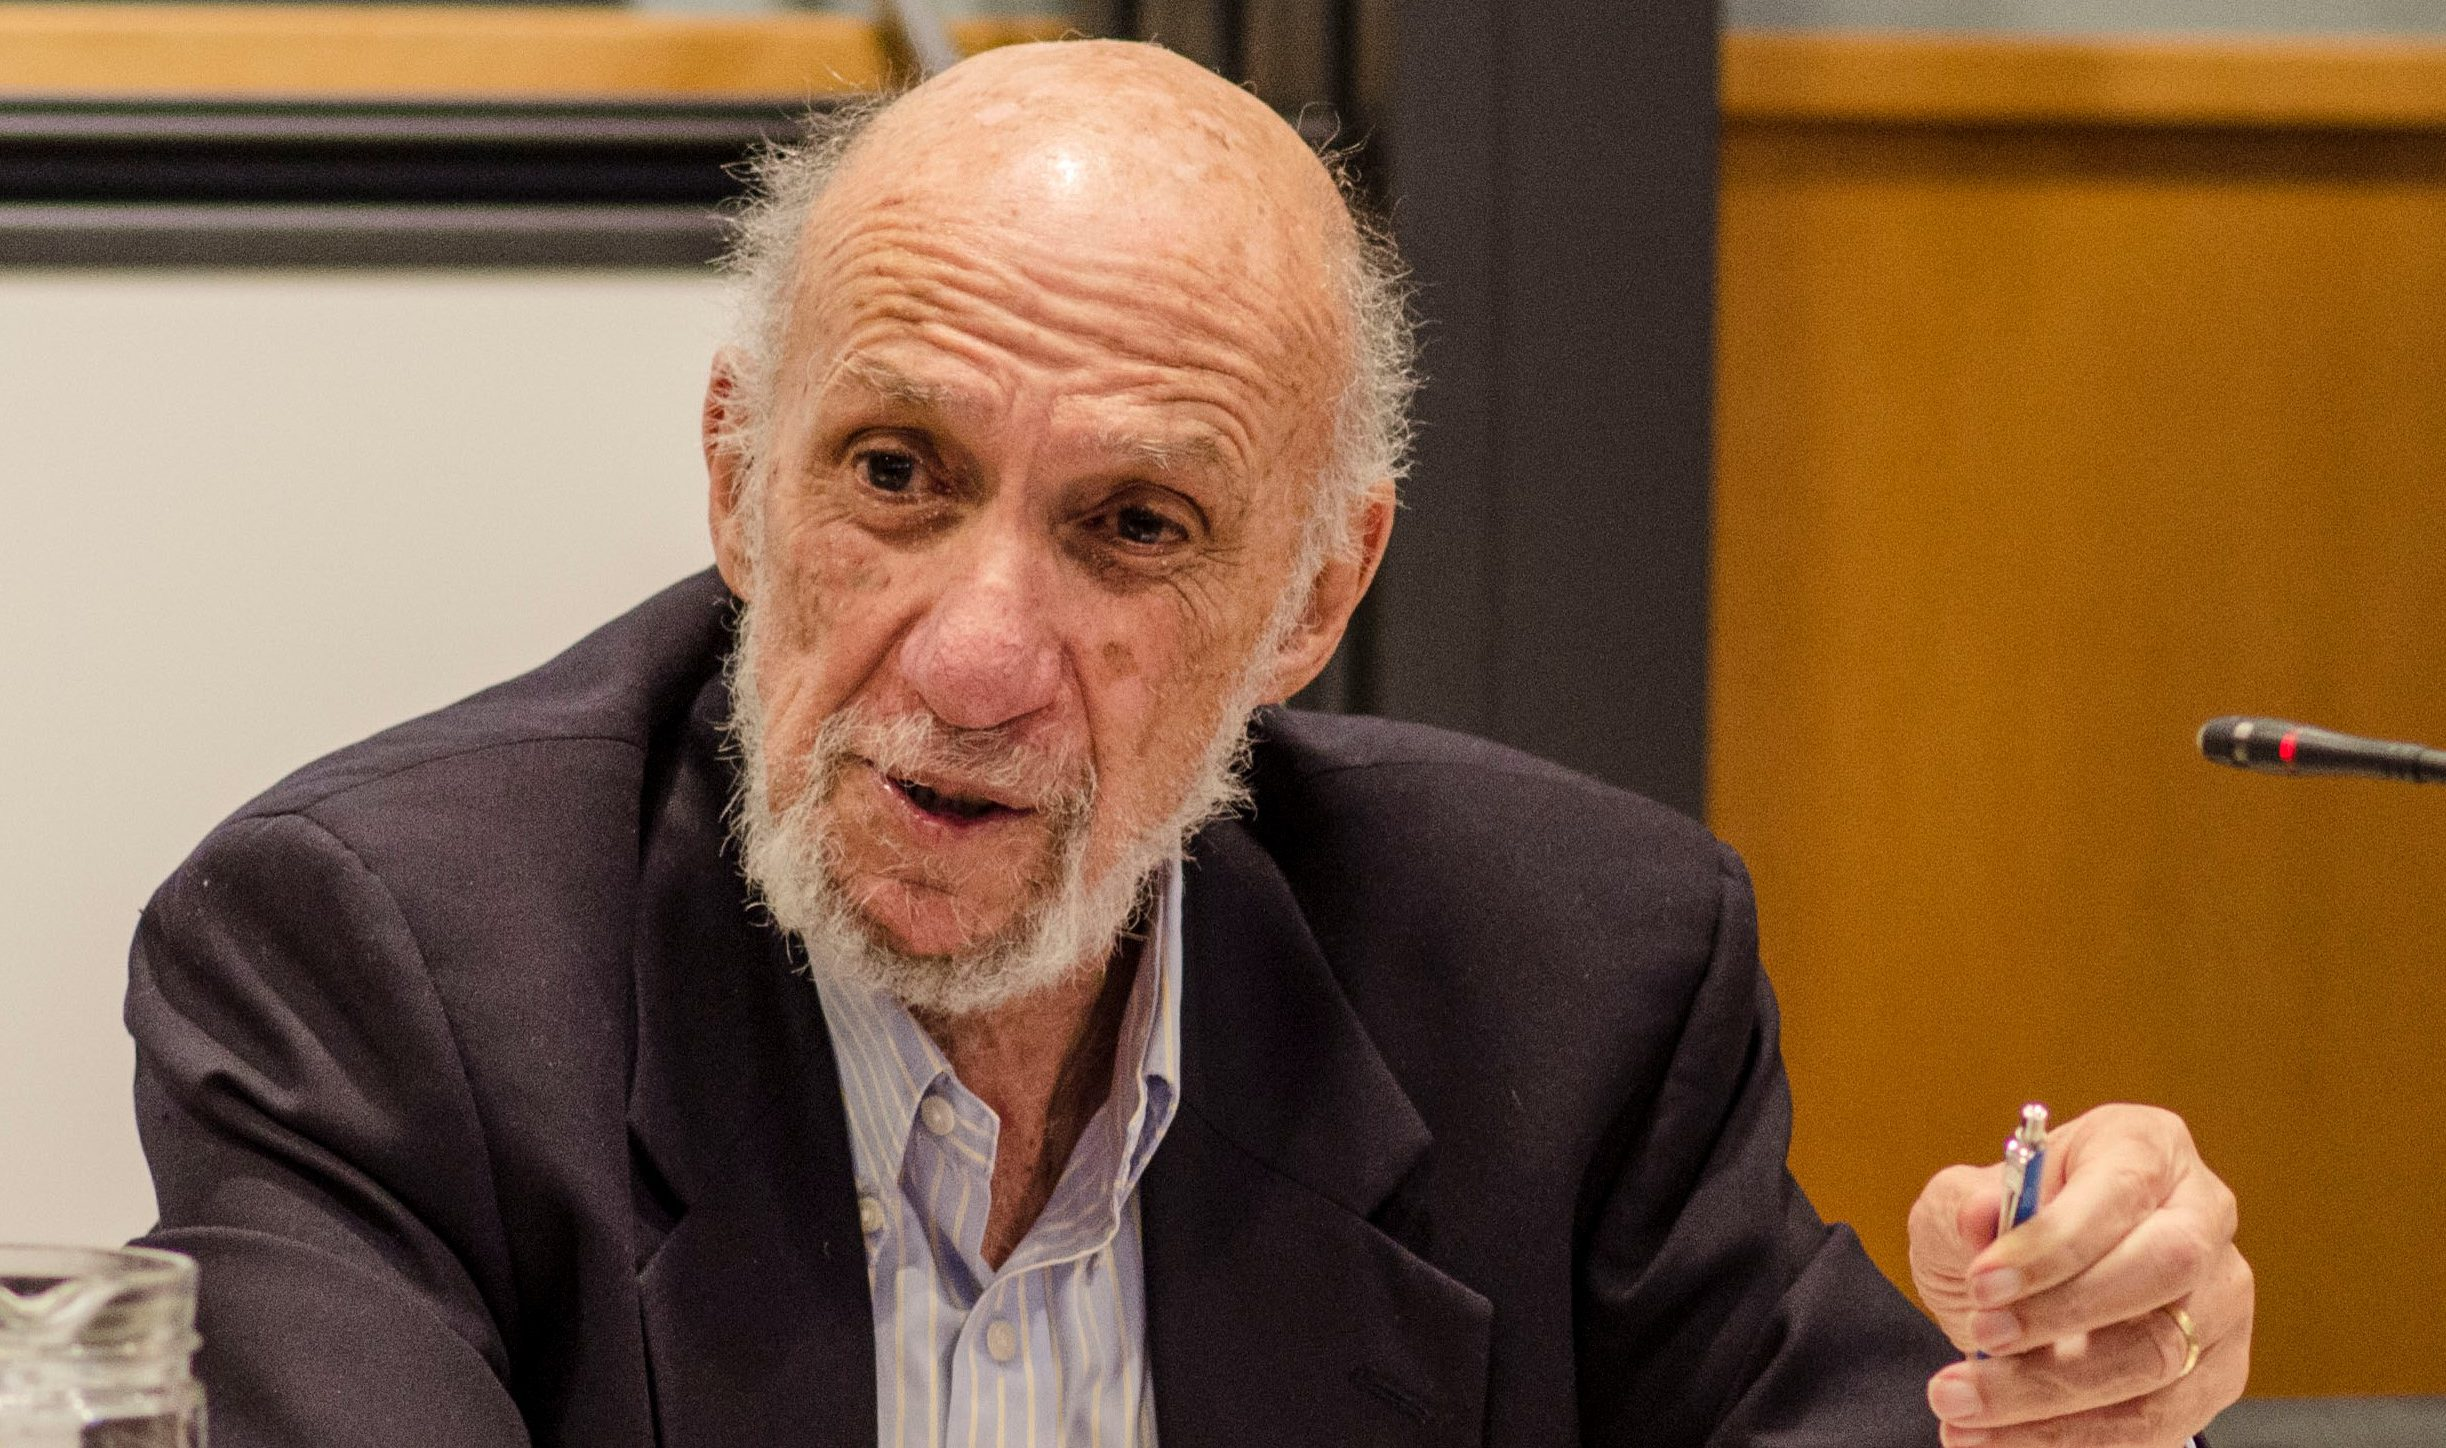 Richard Falk on human rights